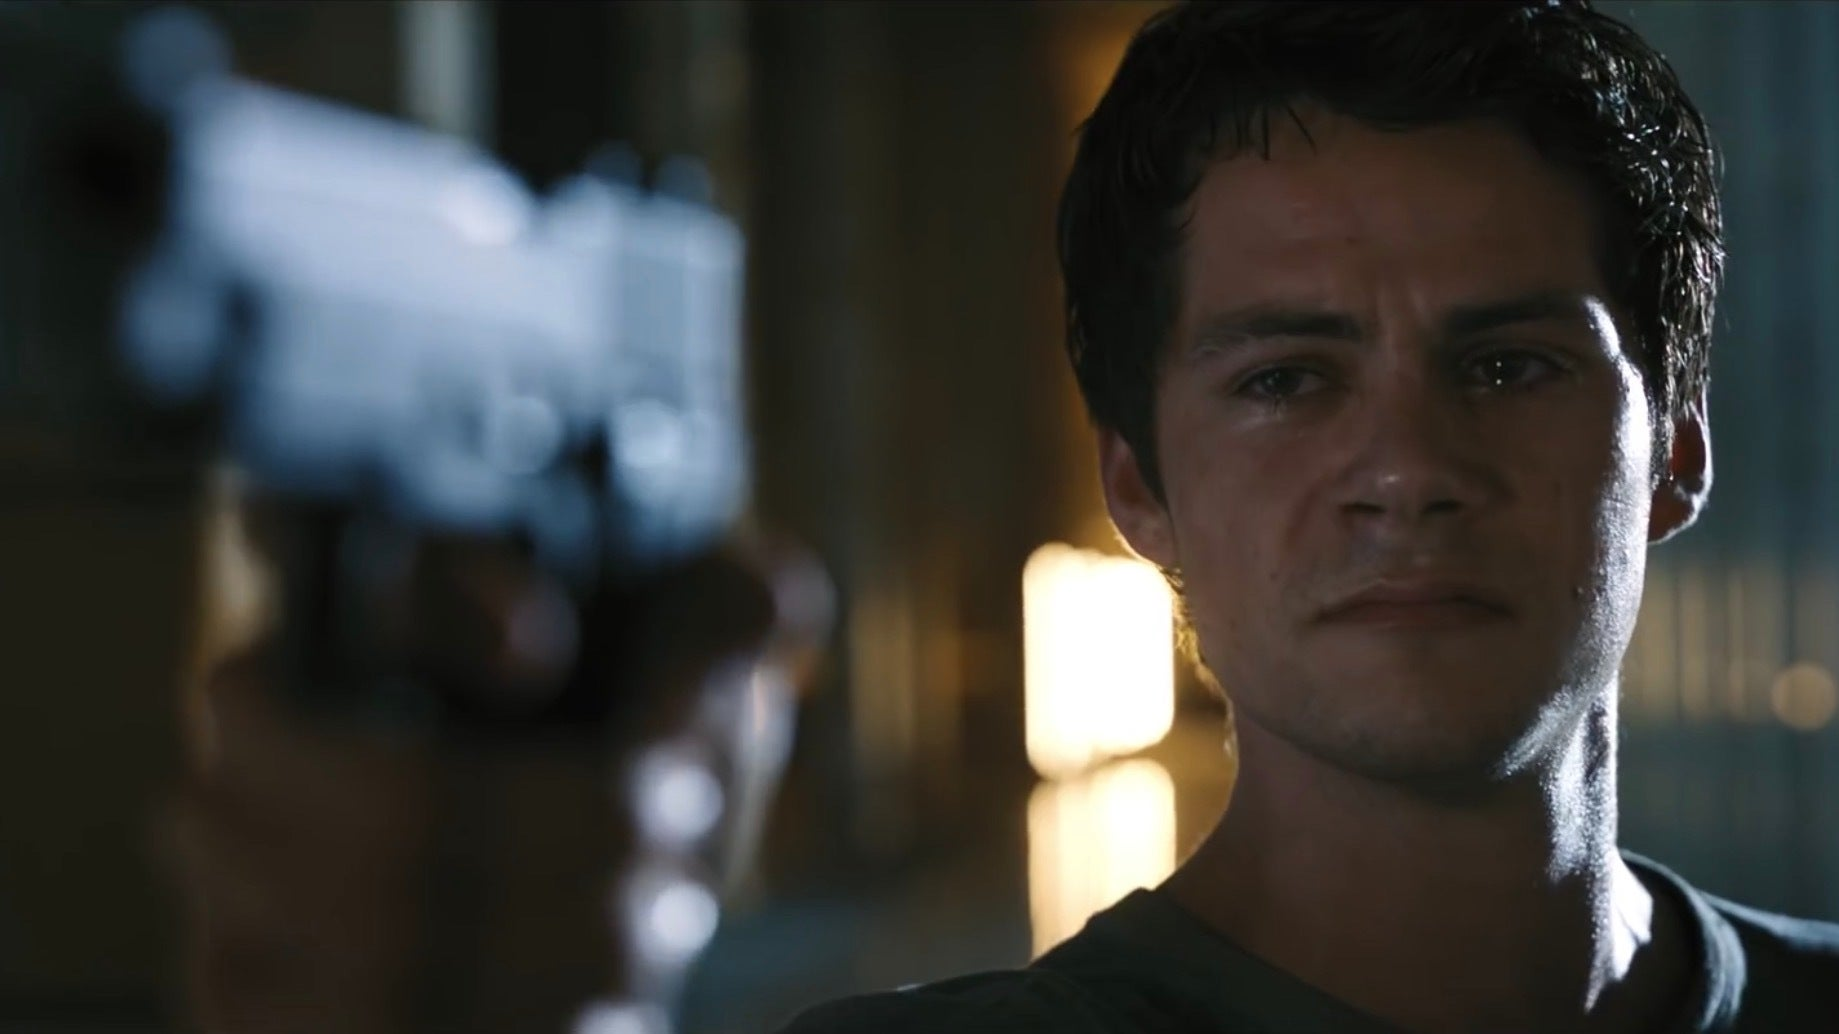 The End Is Coming In The Trailer For Maze Runner: The Death Cure